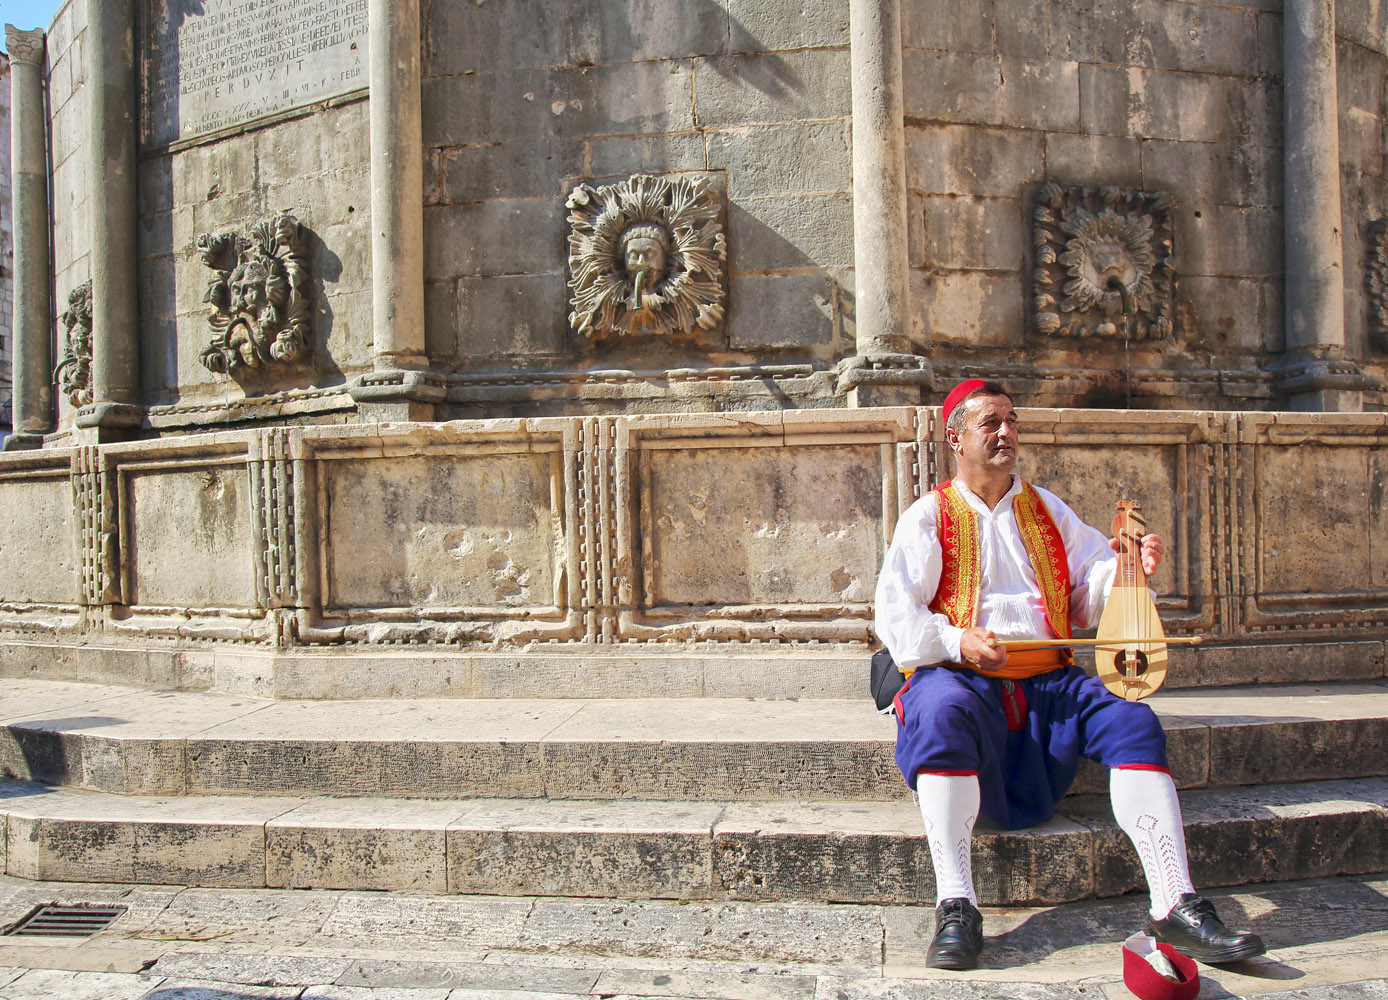 The tambura is a traditional stringed instrument and has become one of the symbols of Croatian musical identity.